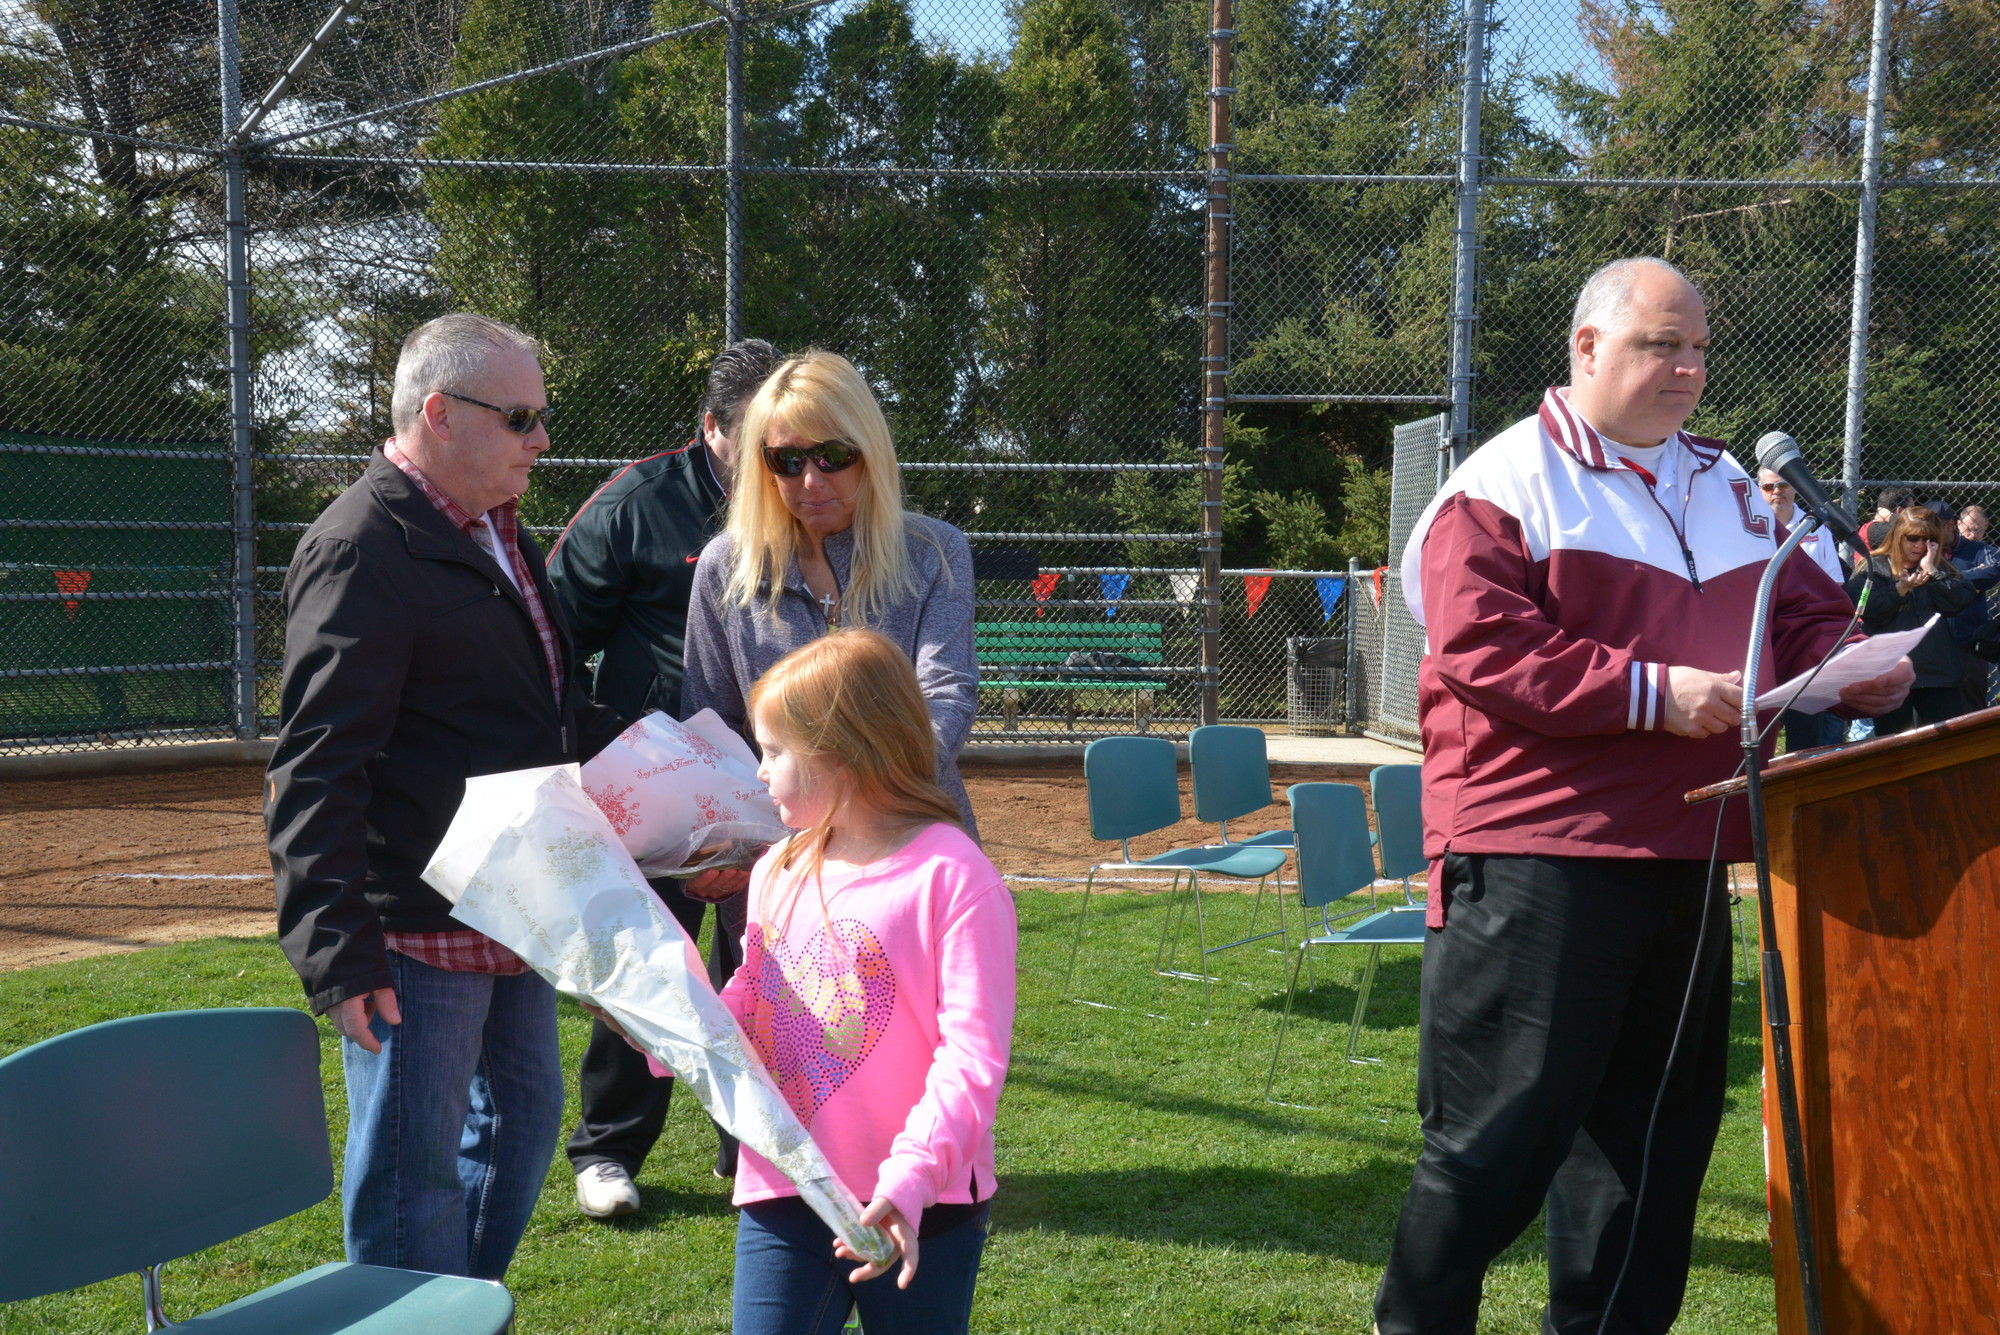 The family of Harlie Treanor, father Kevin, mother Joy Ambrosio and sister Maddie, with league president Joe Aloi during the Central Nassau Little League Parade, which was dedicated to Harlie.